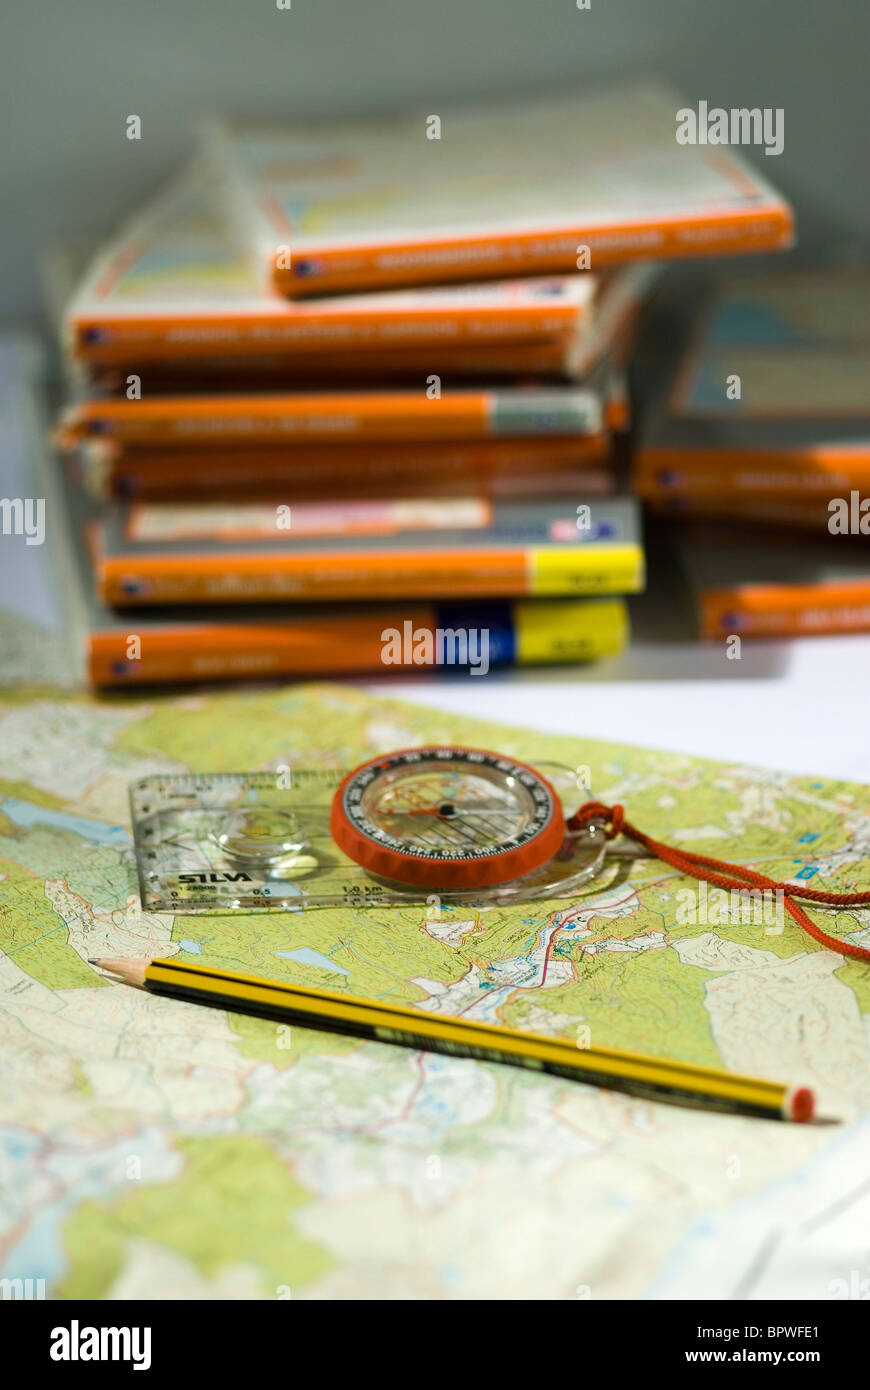 Compass and maps. - Stock Image